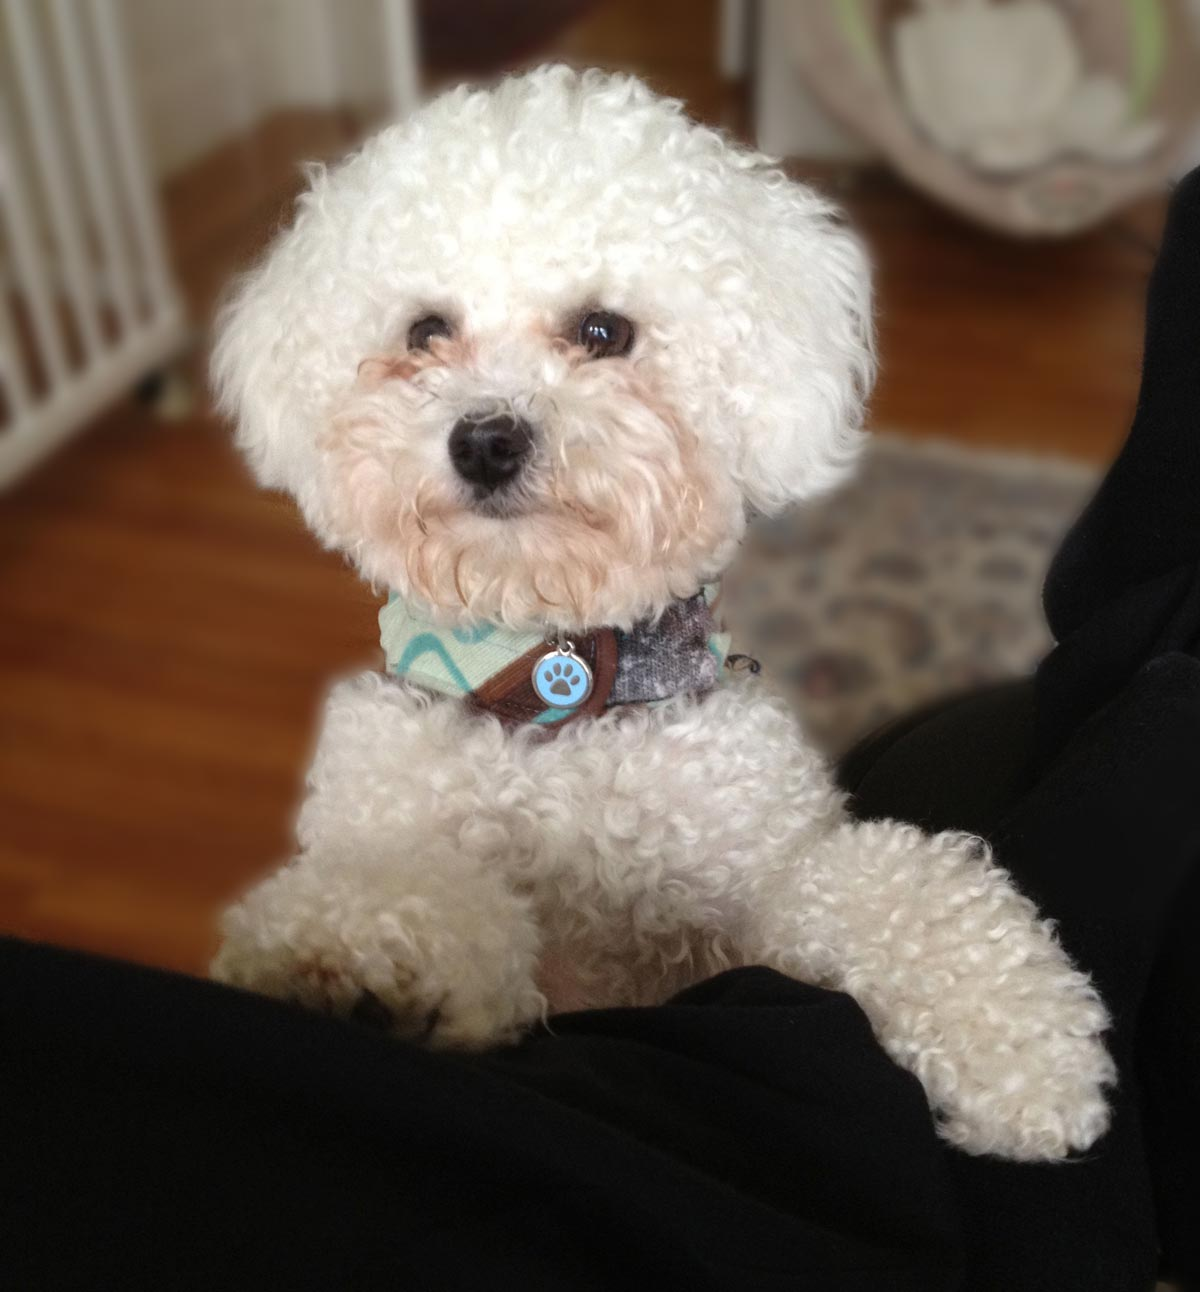 dog brother, a fluffy white bichon frise looks to climb up into Ken's lap